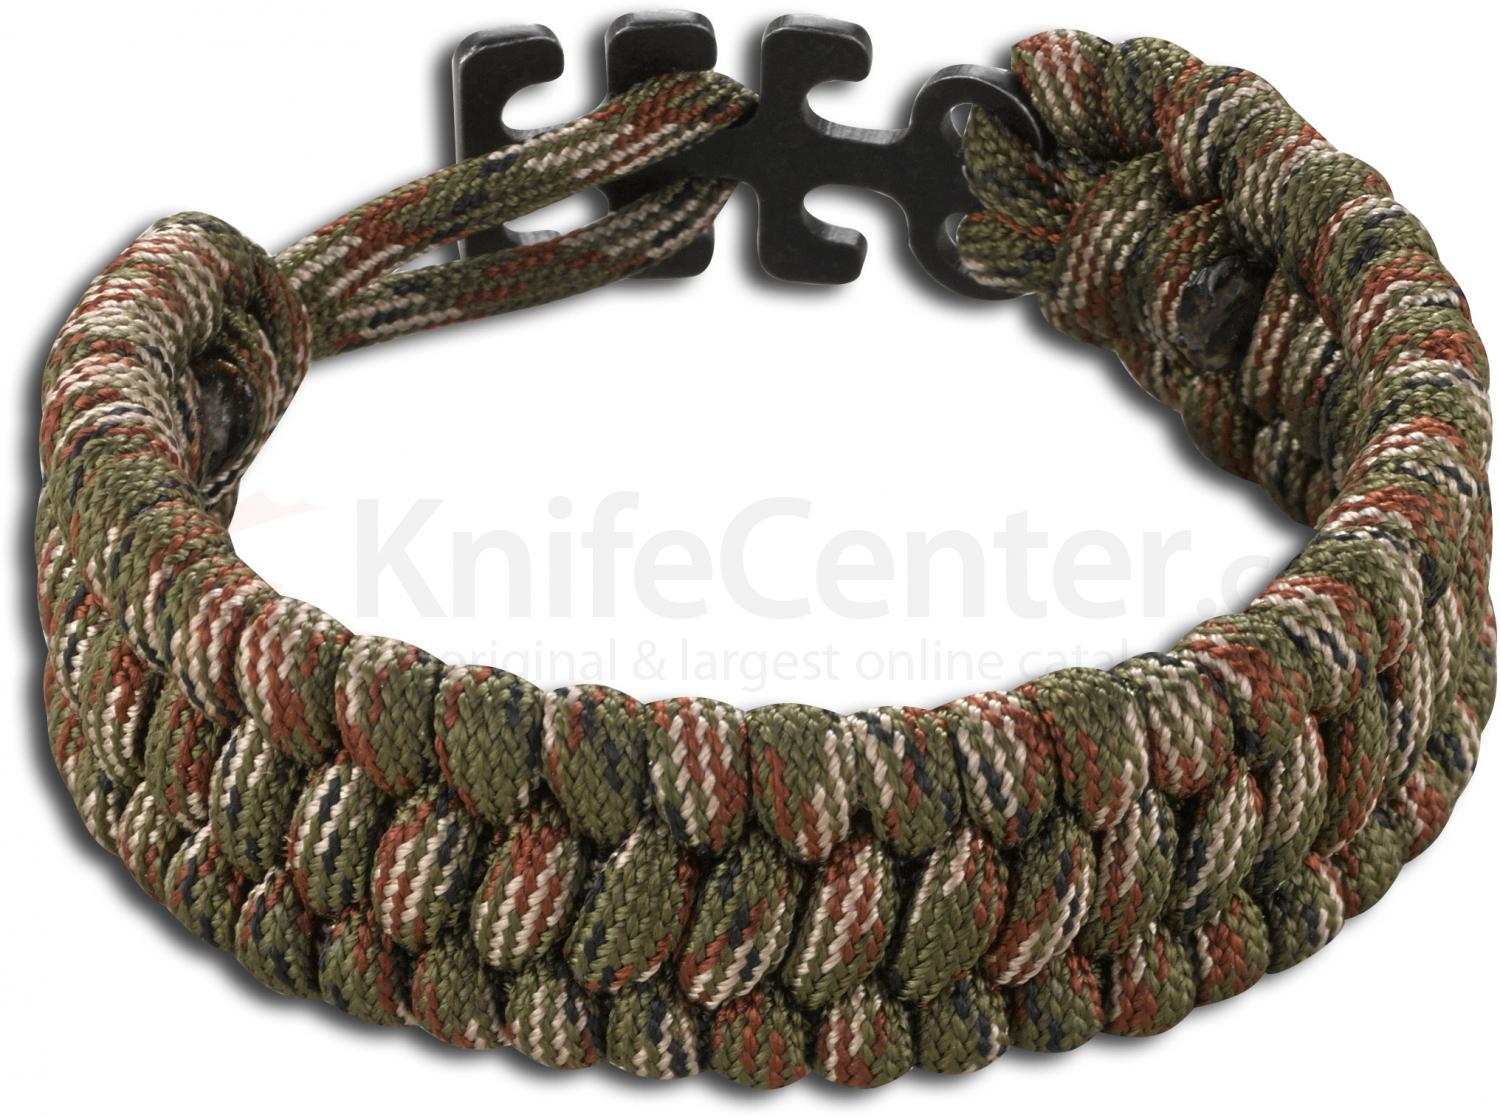 Columbia River 9400c Tom Stokes Adjule Paracord Bracelet Camo